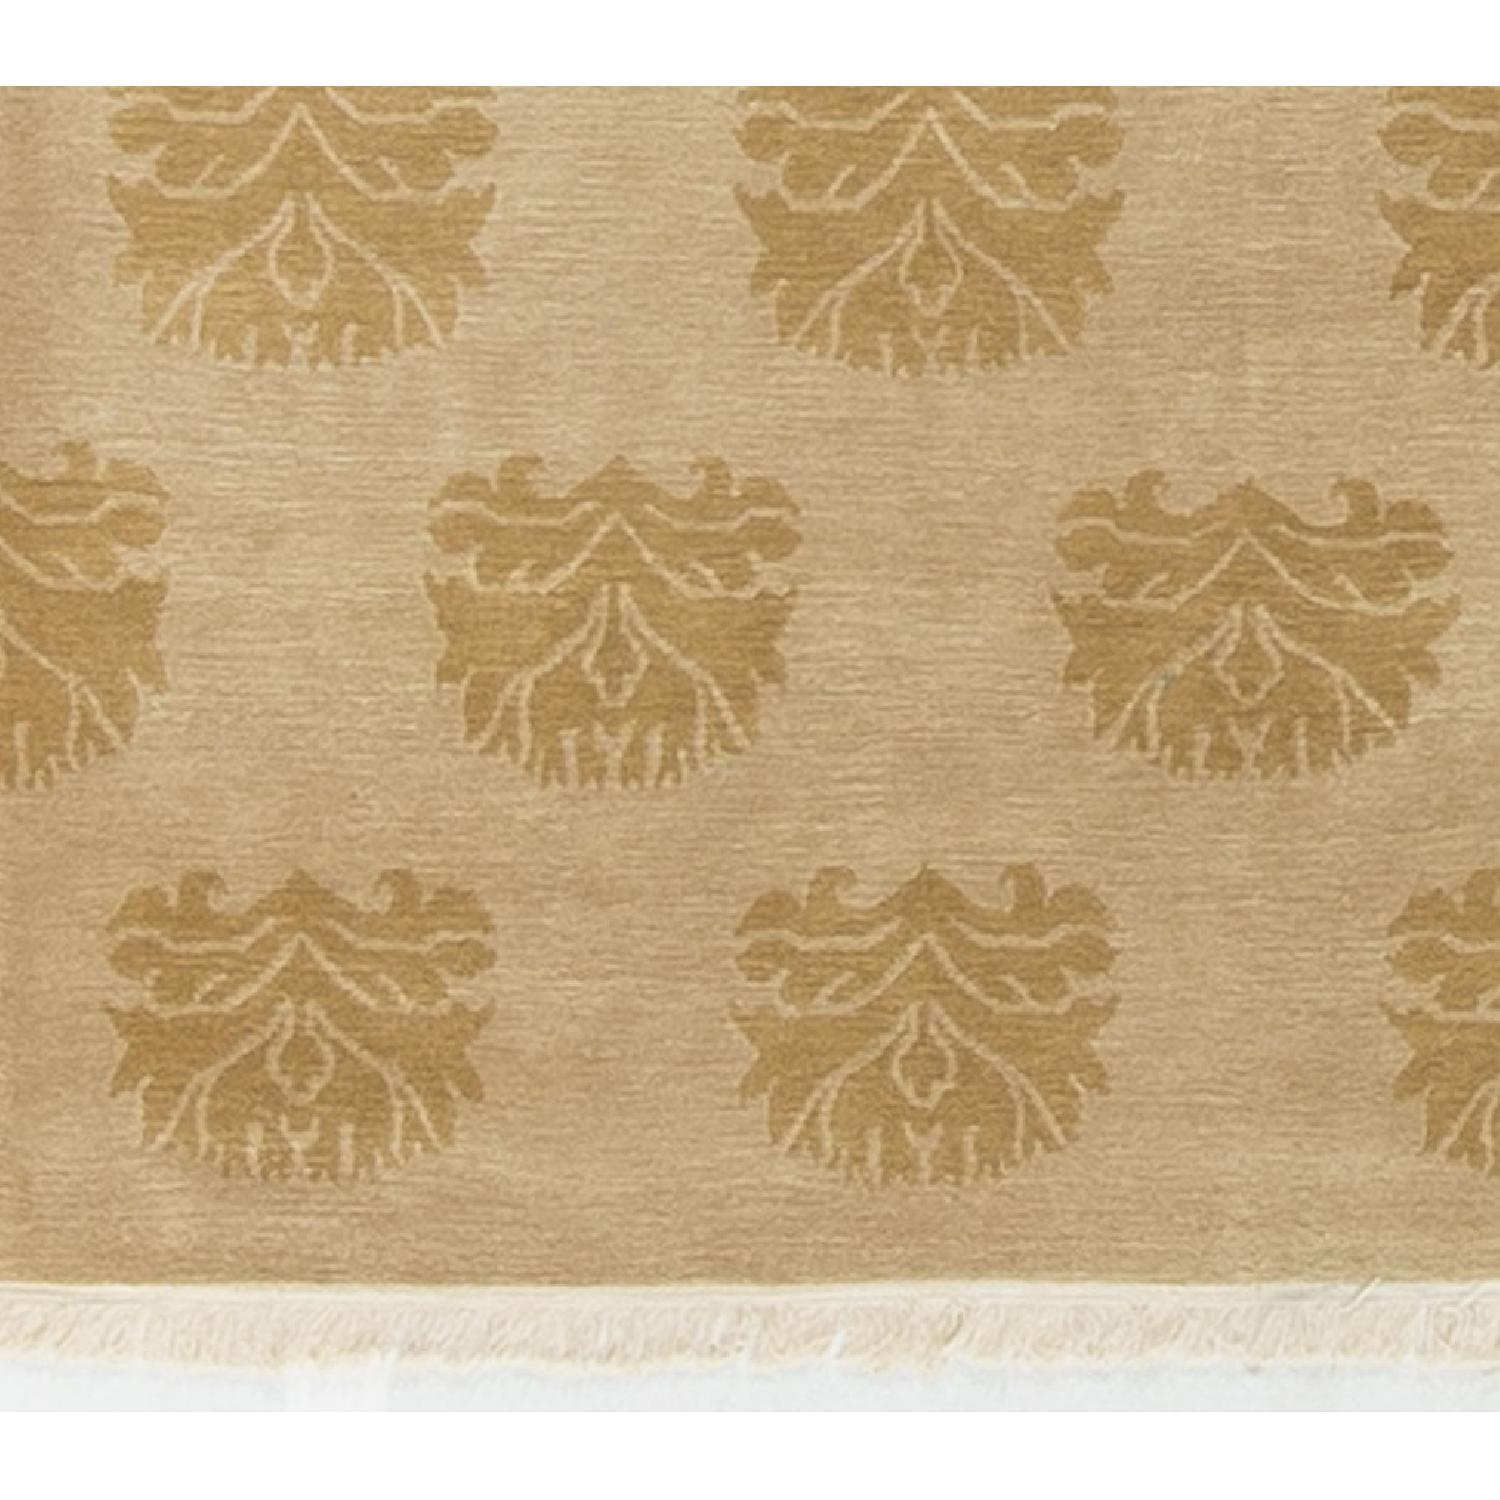 Modern Contemporary Hand Knotted Wool Rug in Beige - image-3